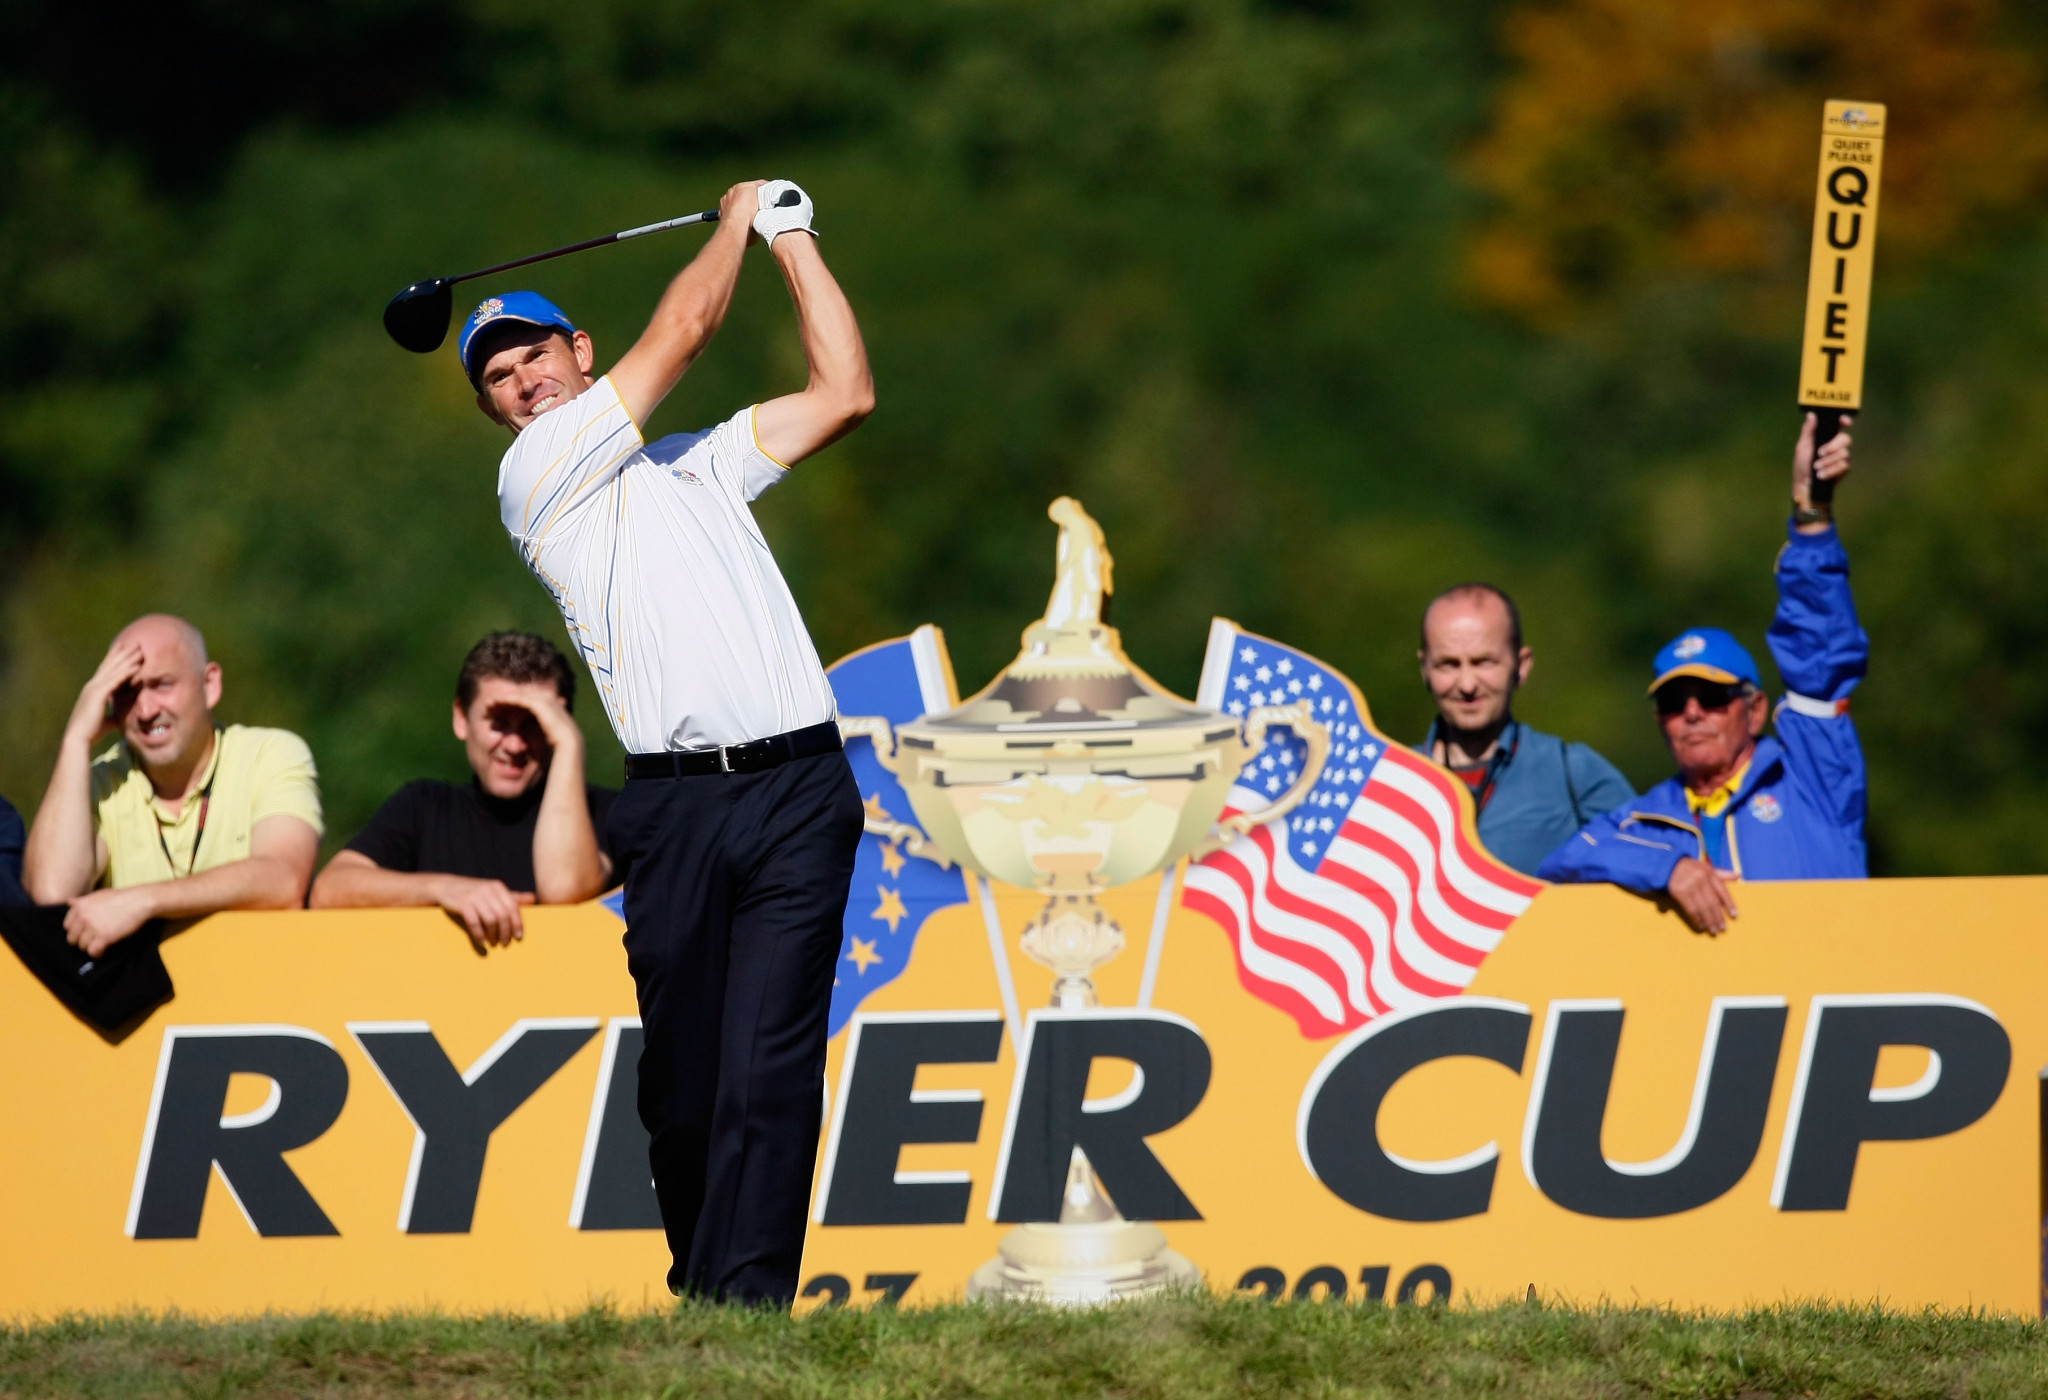 Ryder Cup organisers plan to host over 40,000 fans daily